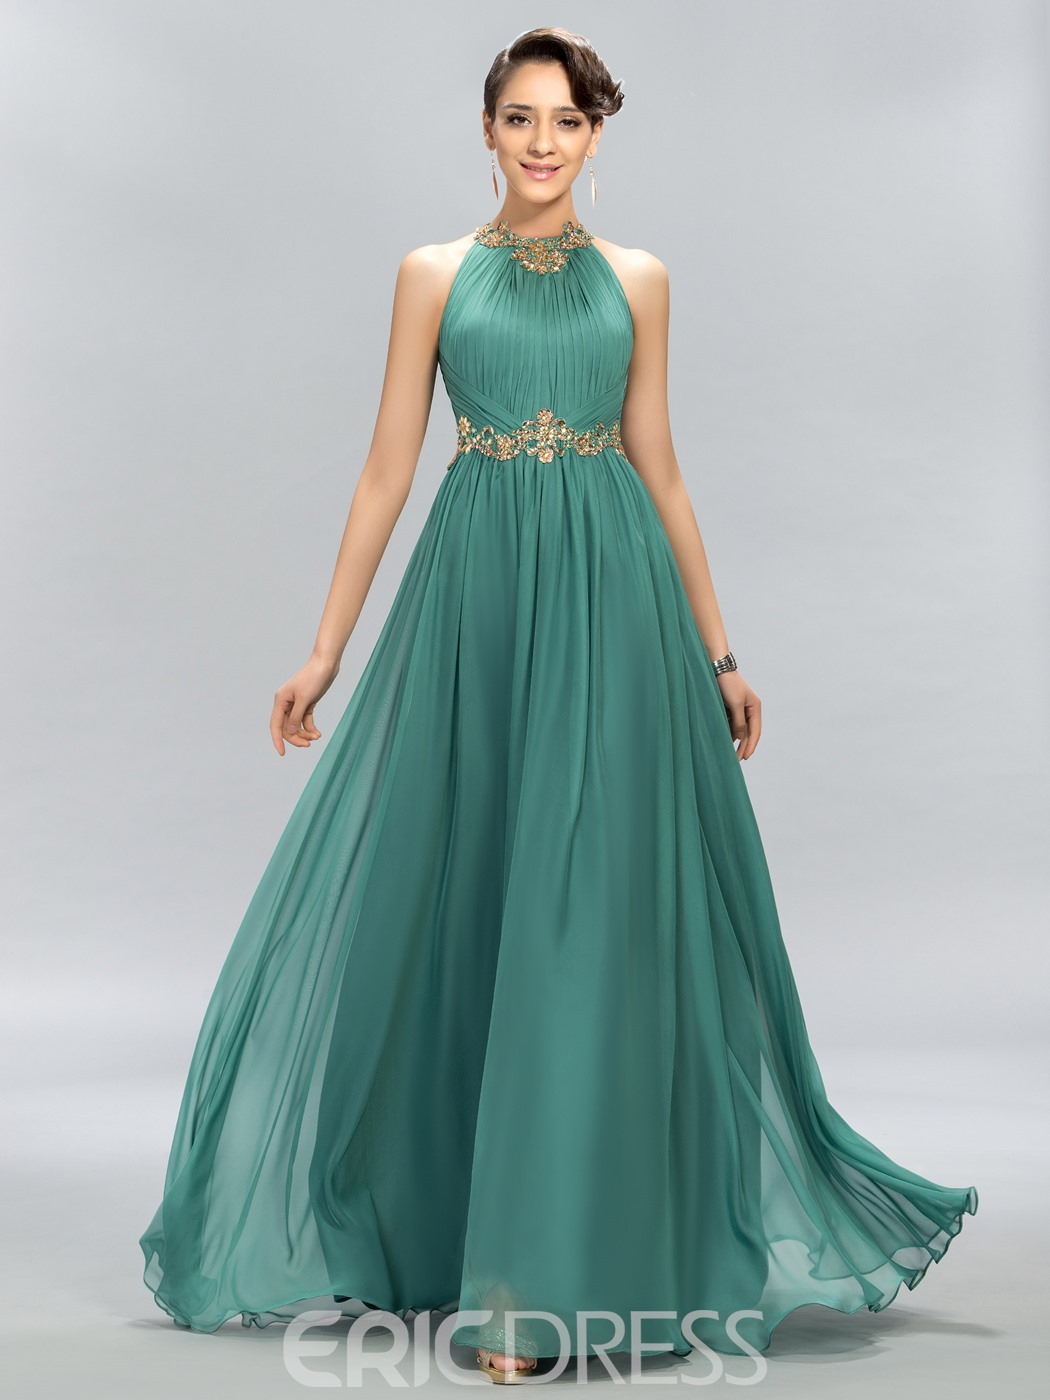 Pretty Jewel Beading A-Line Evening Dress 11274052 - Ericdress.com